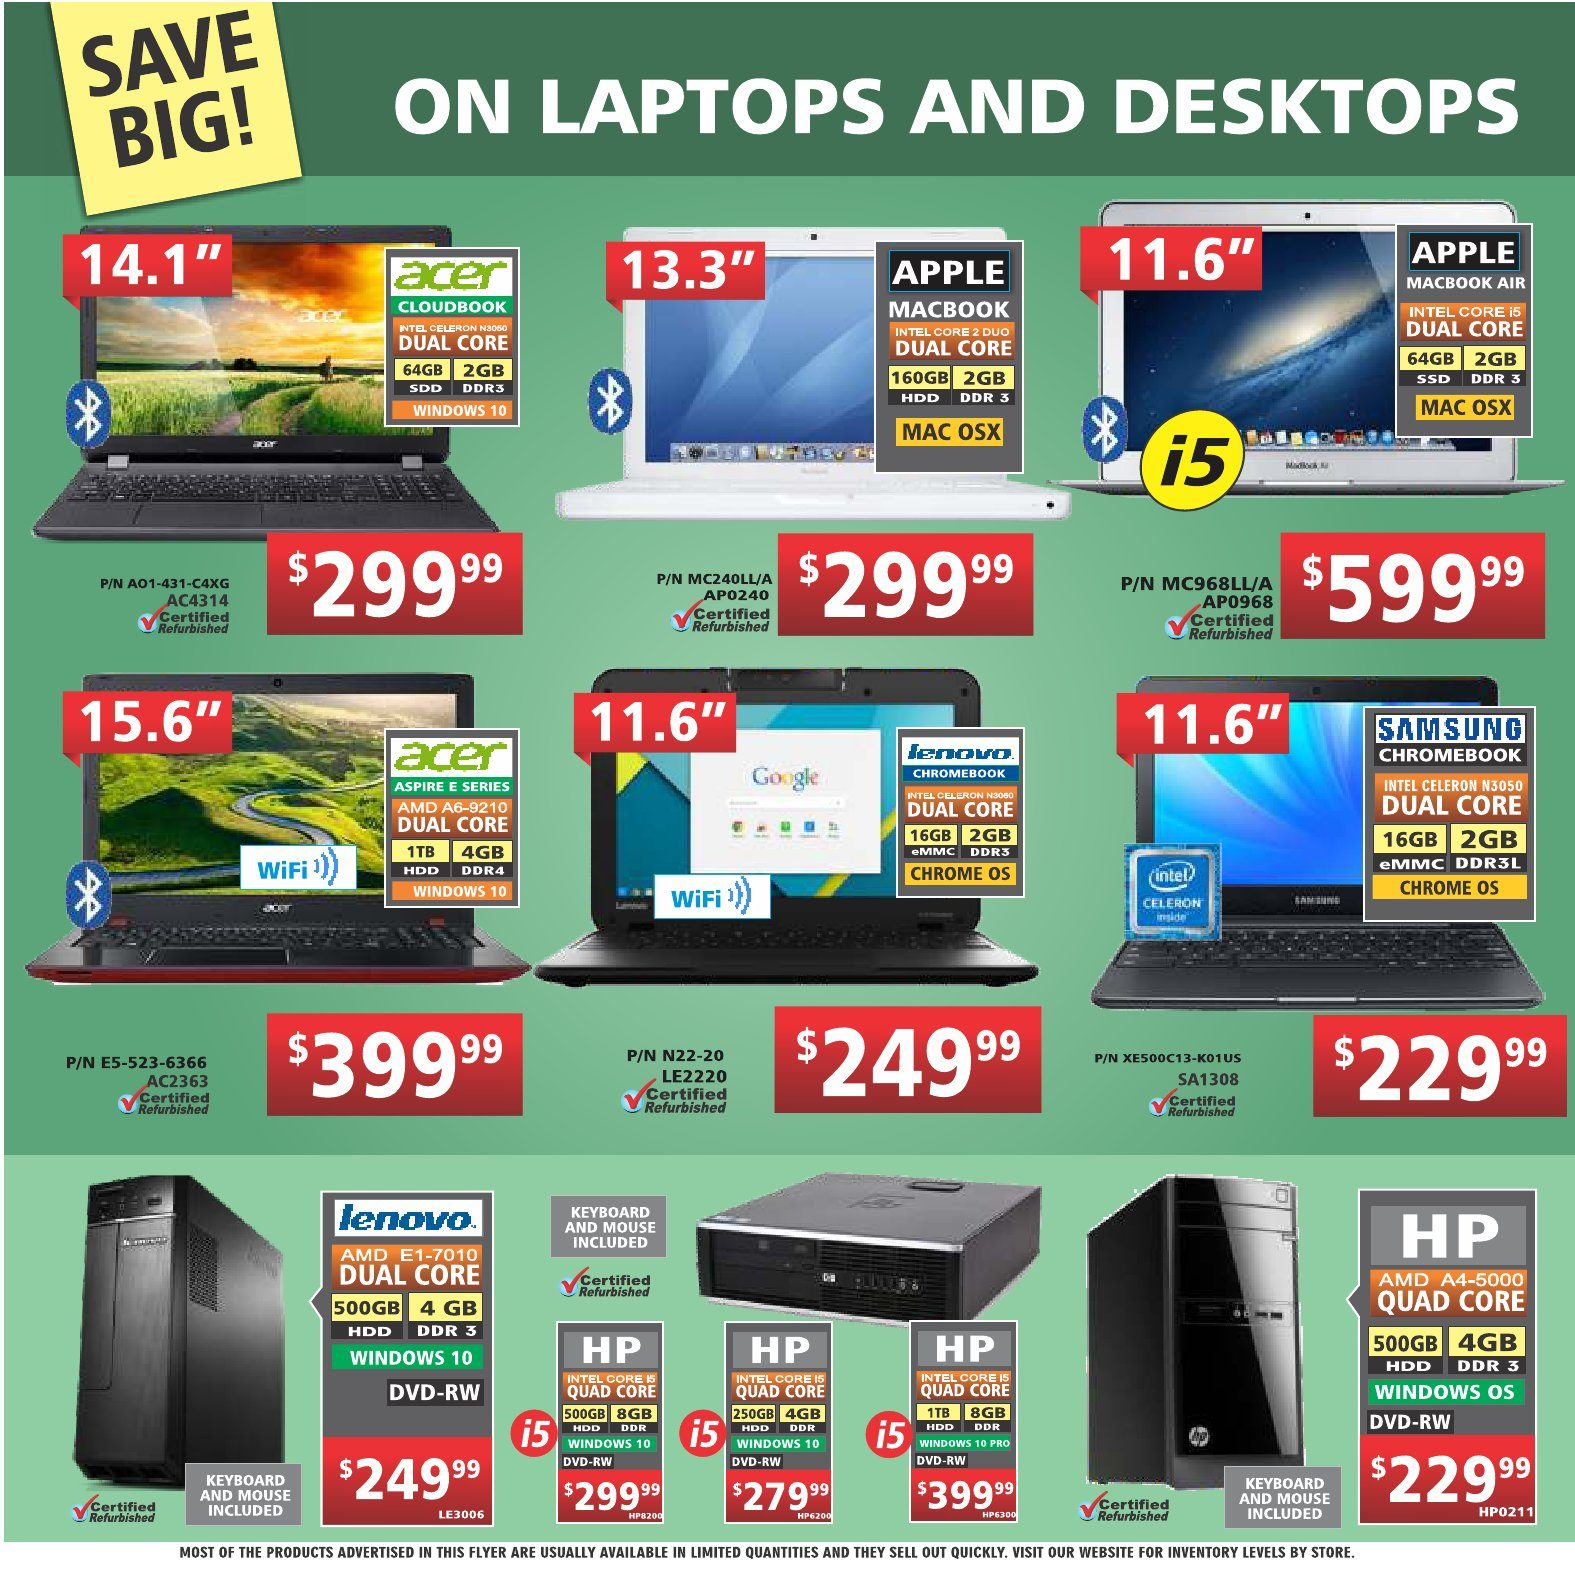 Factory Direct Weekly Flyer - Weekly - Hot! Hot! Hot! Deals